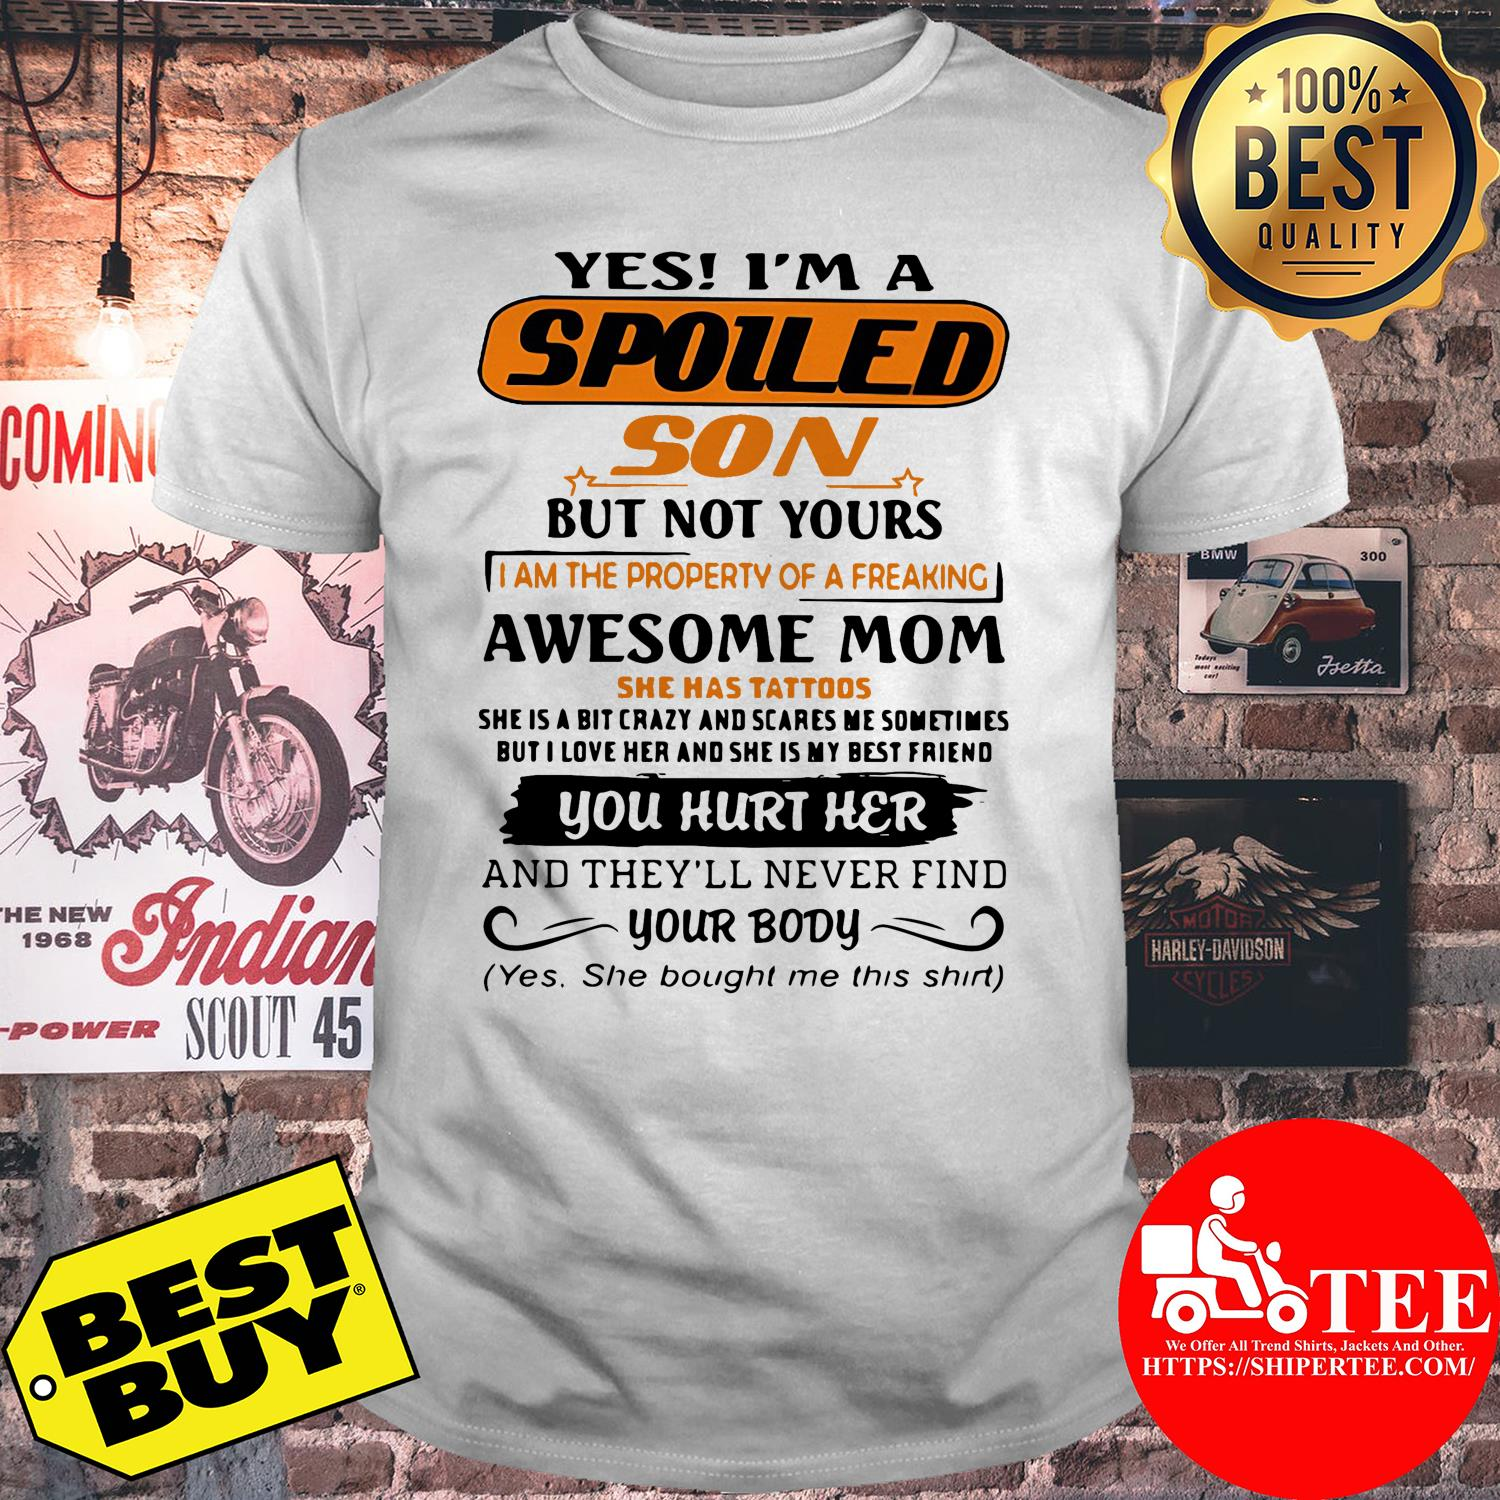 Yes I'm a spoiled son but not yours shirt